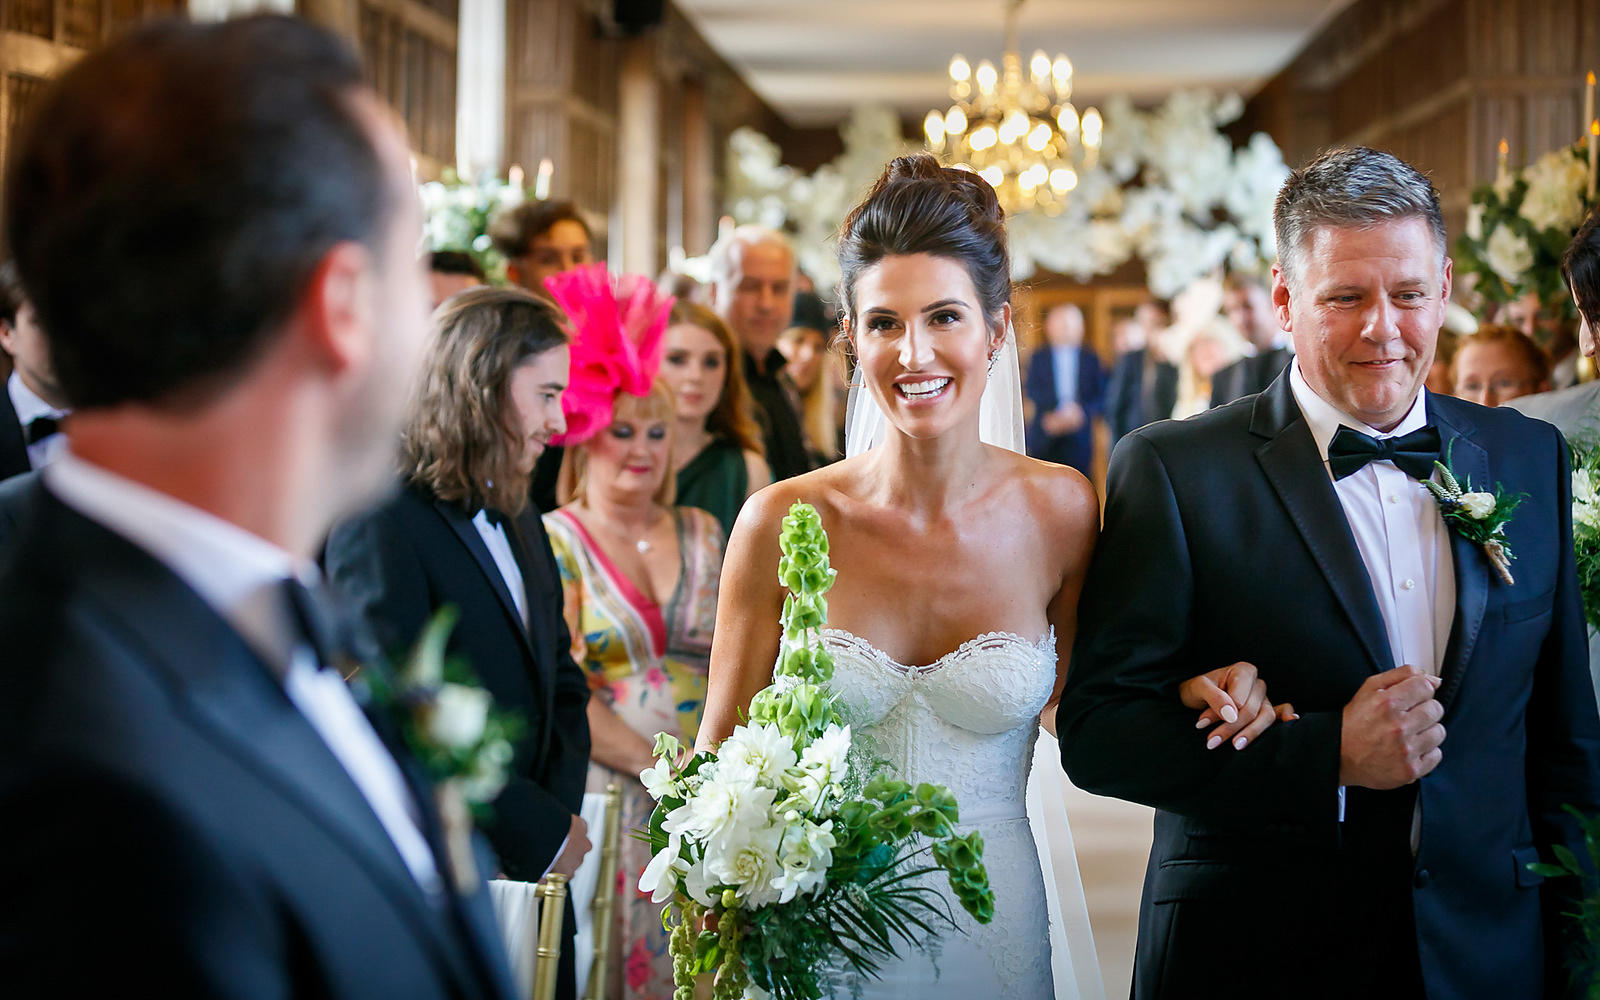 Wedding at Gosfield Hall, Gosfield, Essex, UK